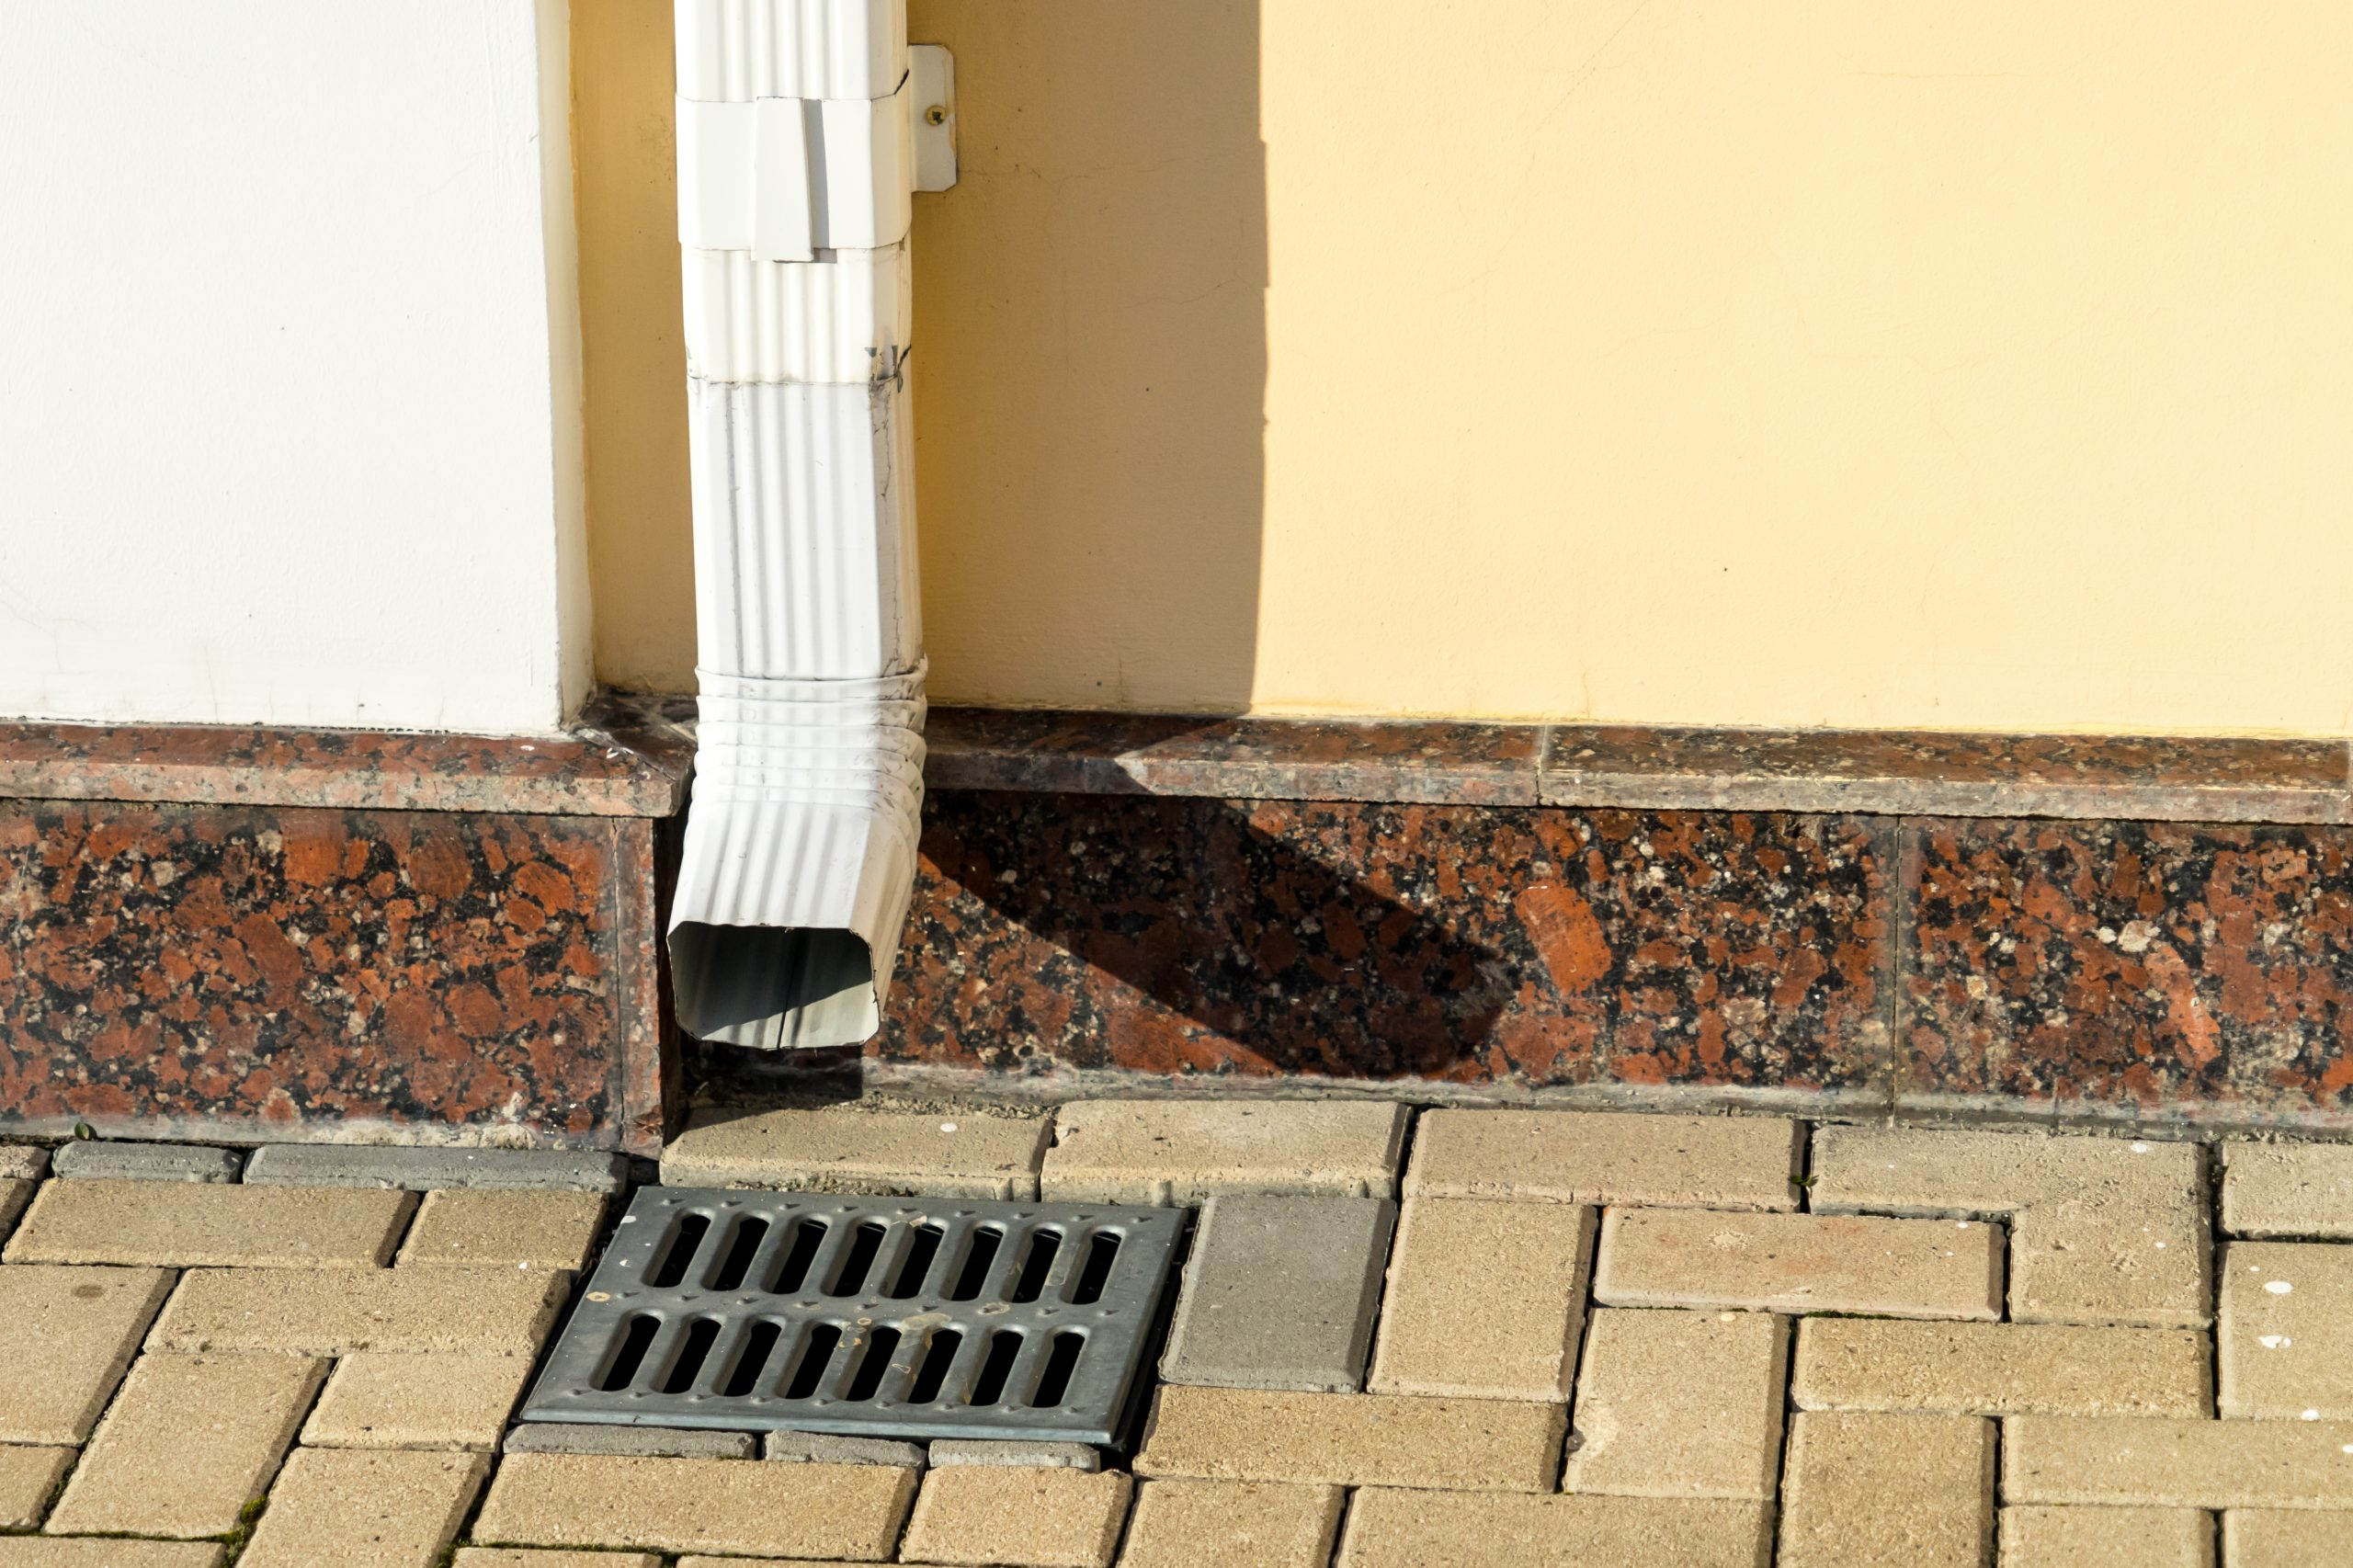 Drainage-into-grate-in-patio-scaled